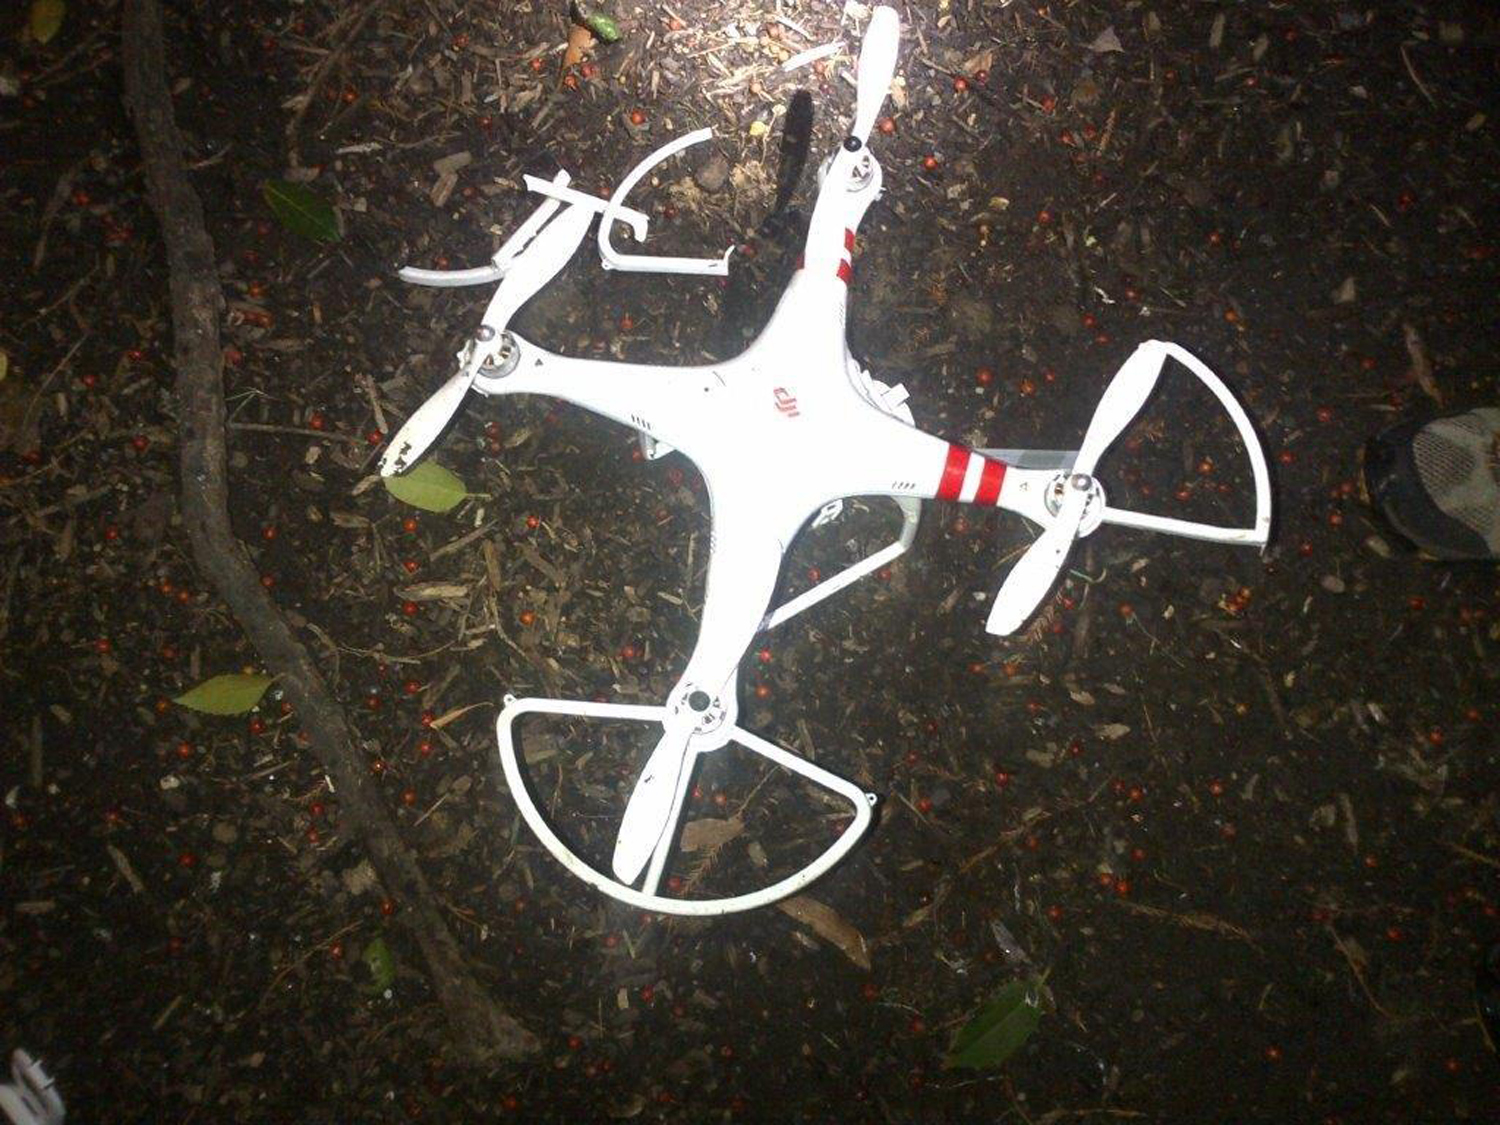 A recreational drone that landed on the White House South Lawn is seen in this U.S. Secret Service handout image taken and released on January 26, 2015. An individual has come forward to claim responsibility for flying the small drone that crashed on the South Lawn of the White House early on Monday morning, a Secret Service spokeswoman said. The individual claimed the drone was being used for recreational purposes. REUTERS/U.S. Secret Service//Handout via Reuters (UNITED STATES - Tags: POLITICS FOR EDITORIAL USE ONLY. NOT FOR SALE FOR MARKETING OR ADVERTISING CAMPAIGNS. THIS IMAGE HAS BEEN SUPPLIED BY A THIRD PARTY. IT IS DISTRIBUTED, EXACTLY AS RECEIVED BY REUTERS, AS A SERVICE TO CLIENTS - RTR4N132